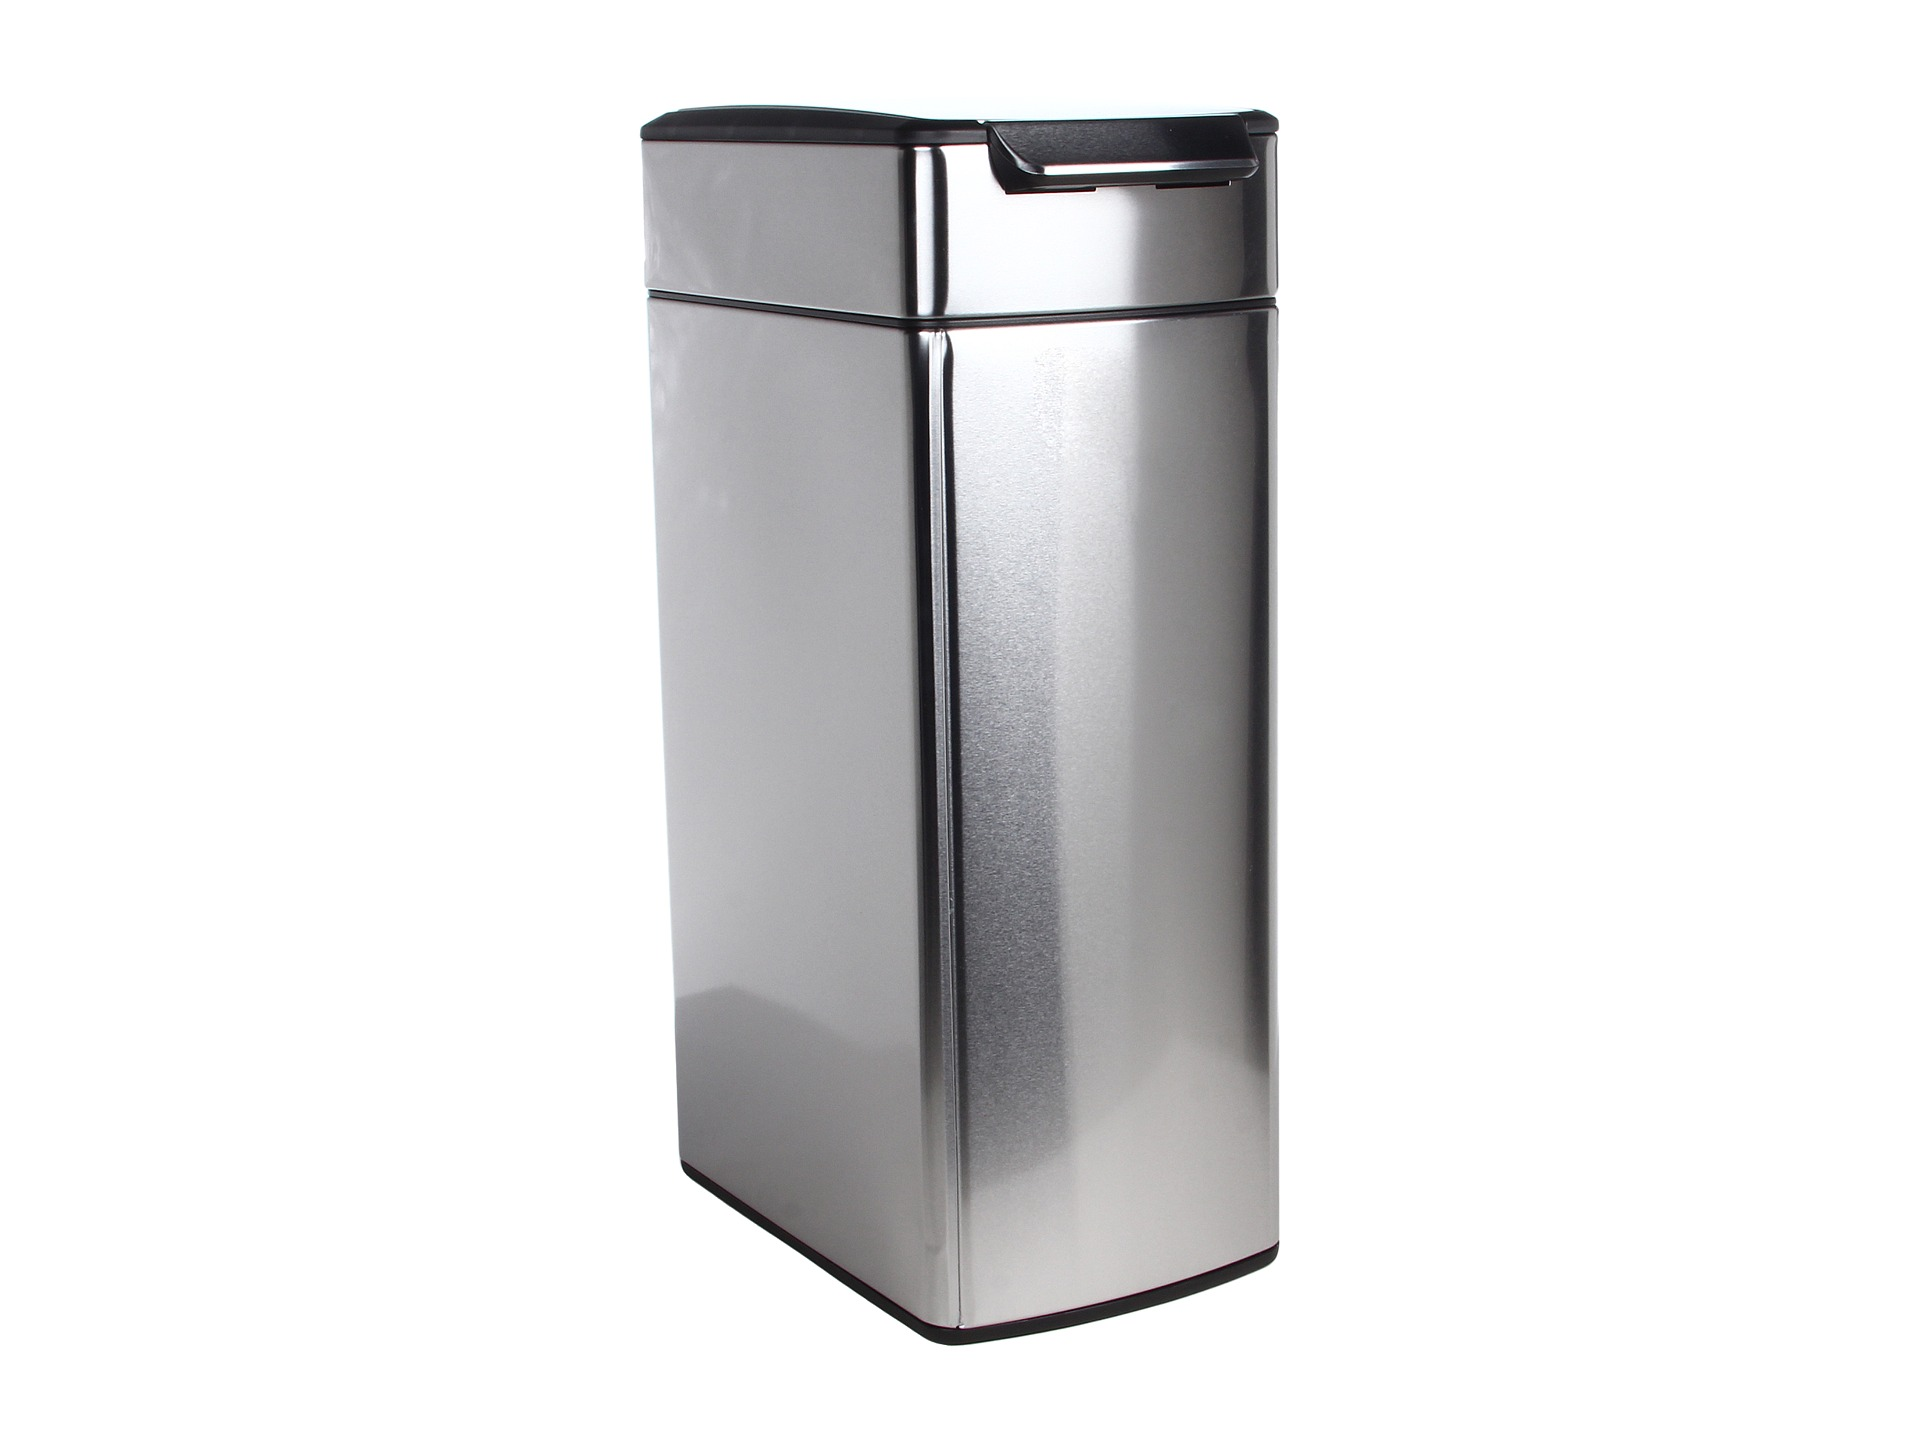 Simplehuman simplehuman slim touch bar trash can fingerprint proof 40 liters 10 5 shipped free - Slim garbage cans for kitchen ...